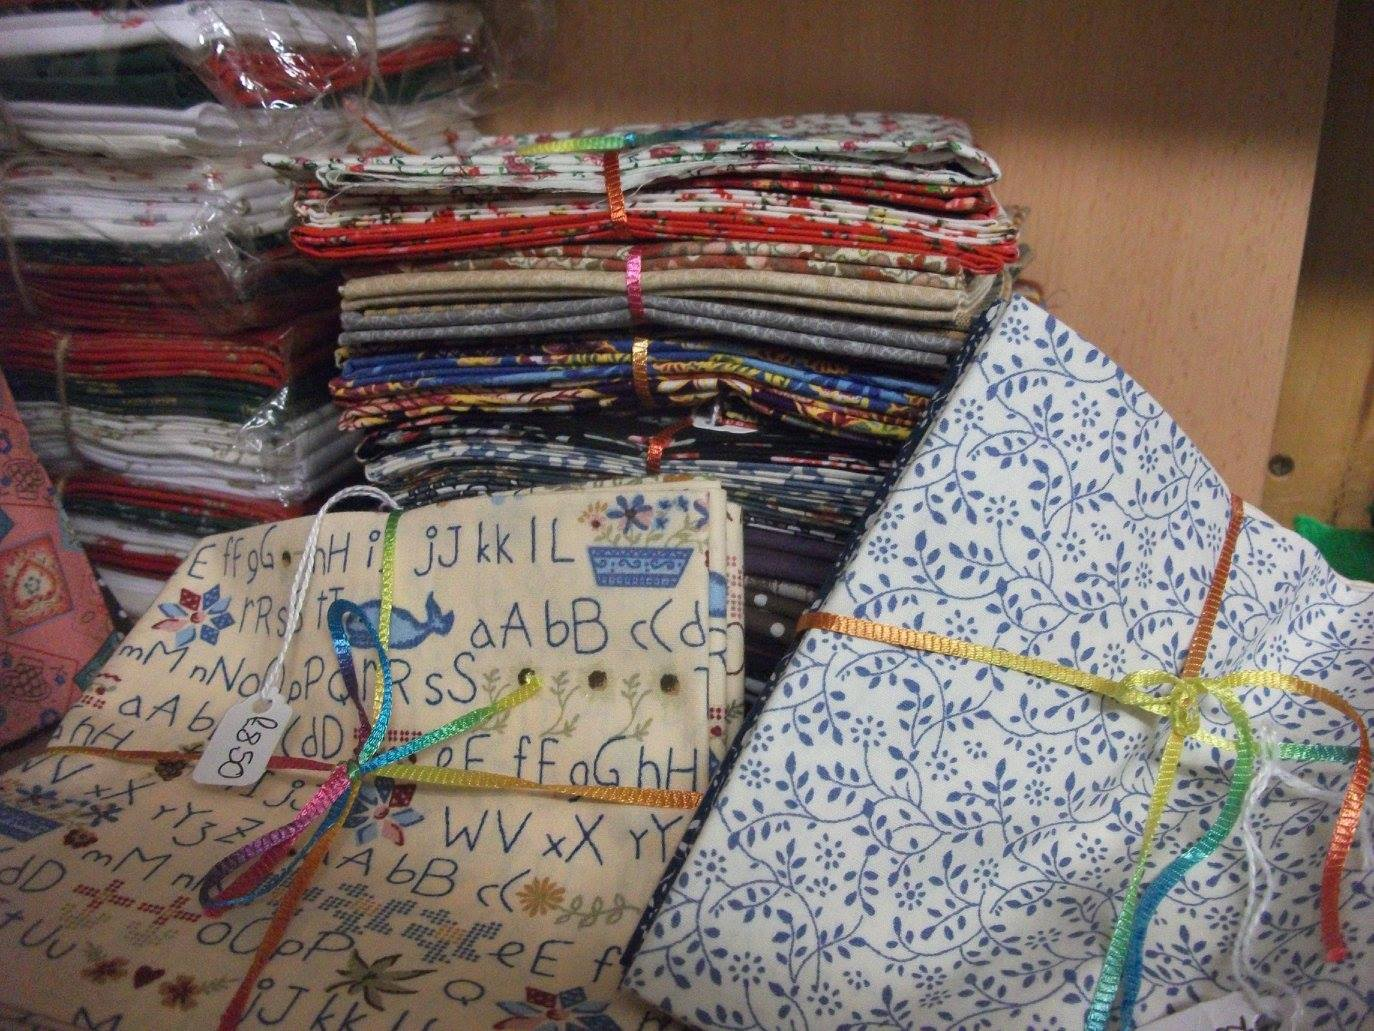 Bundles of patterned fabric